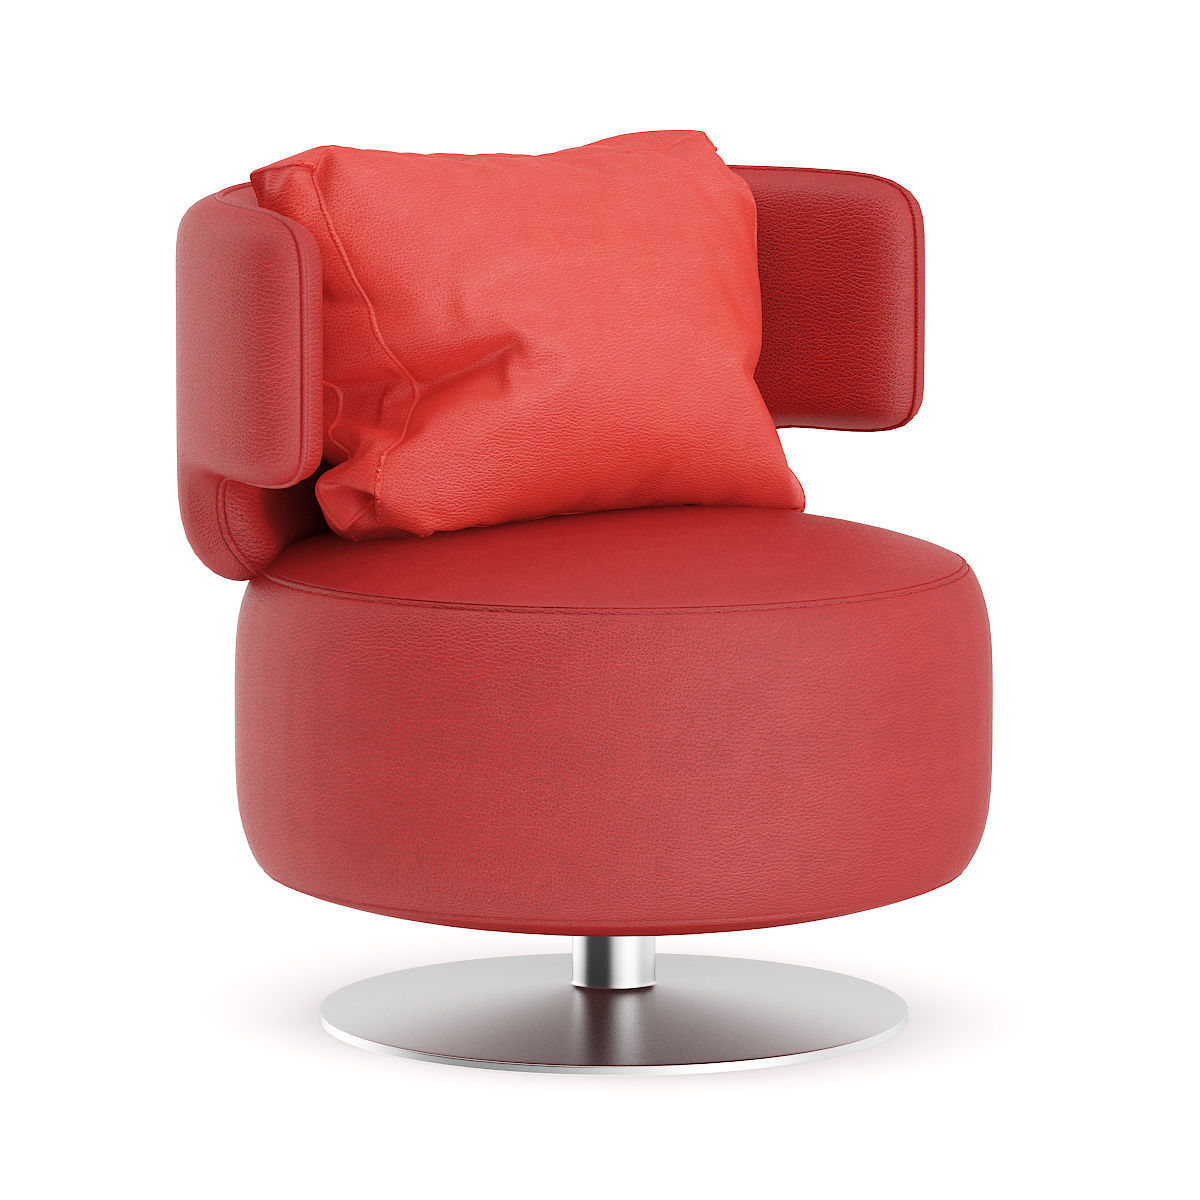 Red Leather Swivel Chair Red Leather Swivel Chair With Pillow 3d Model